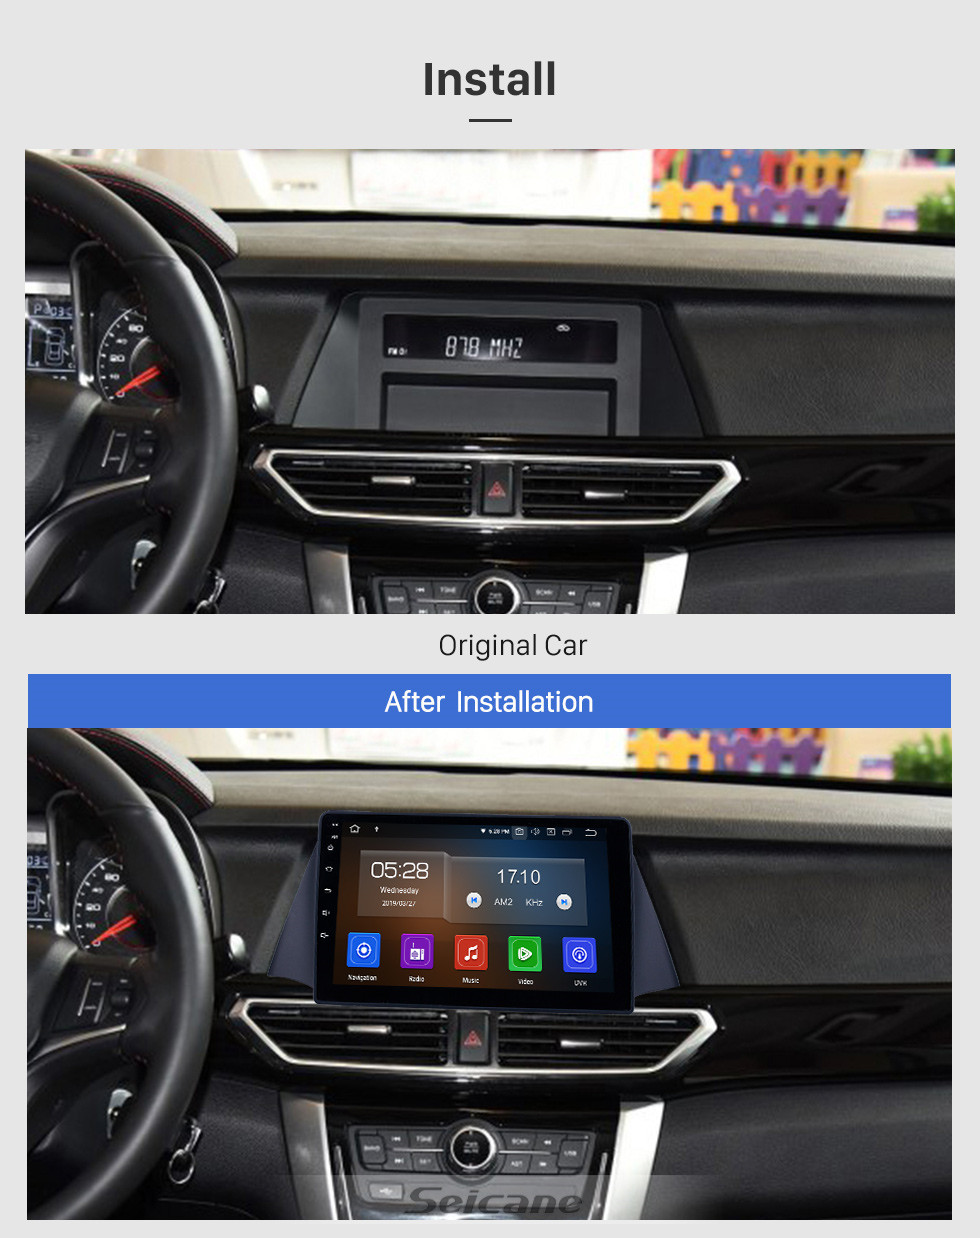 Seicane Android 10.0 9 inch GPS Navigation Radio for 2015 Zotye Domy x5 with HD Touchscreen Carplay USB Bluetooth support DVR DAB+